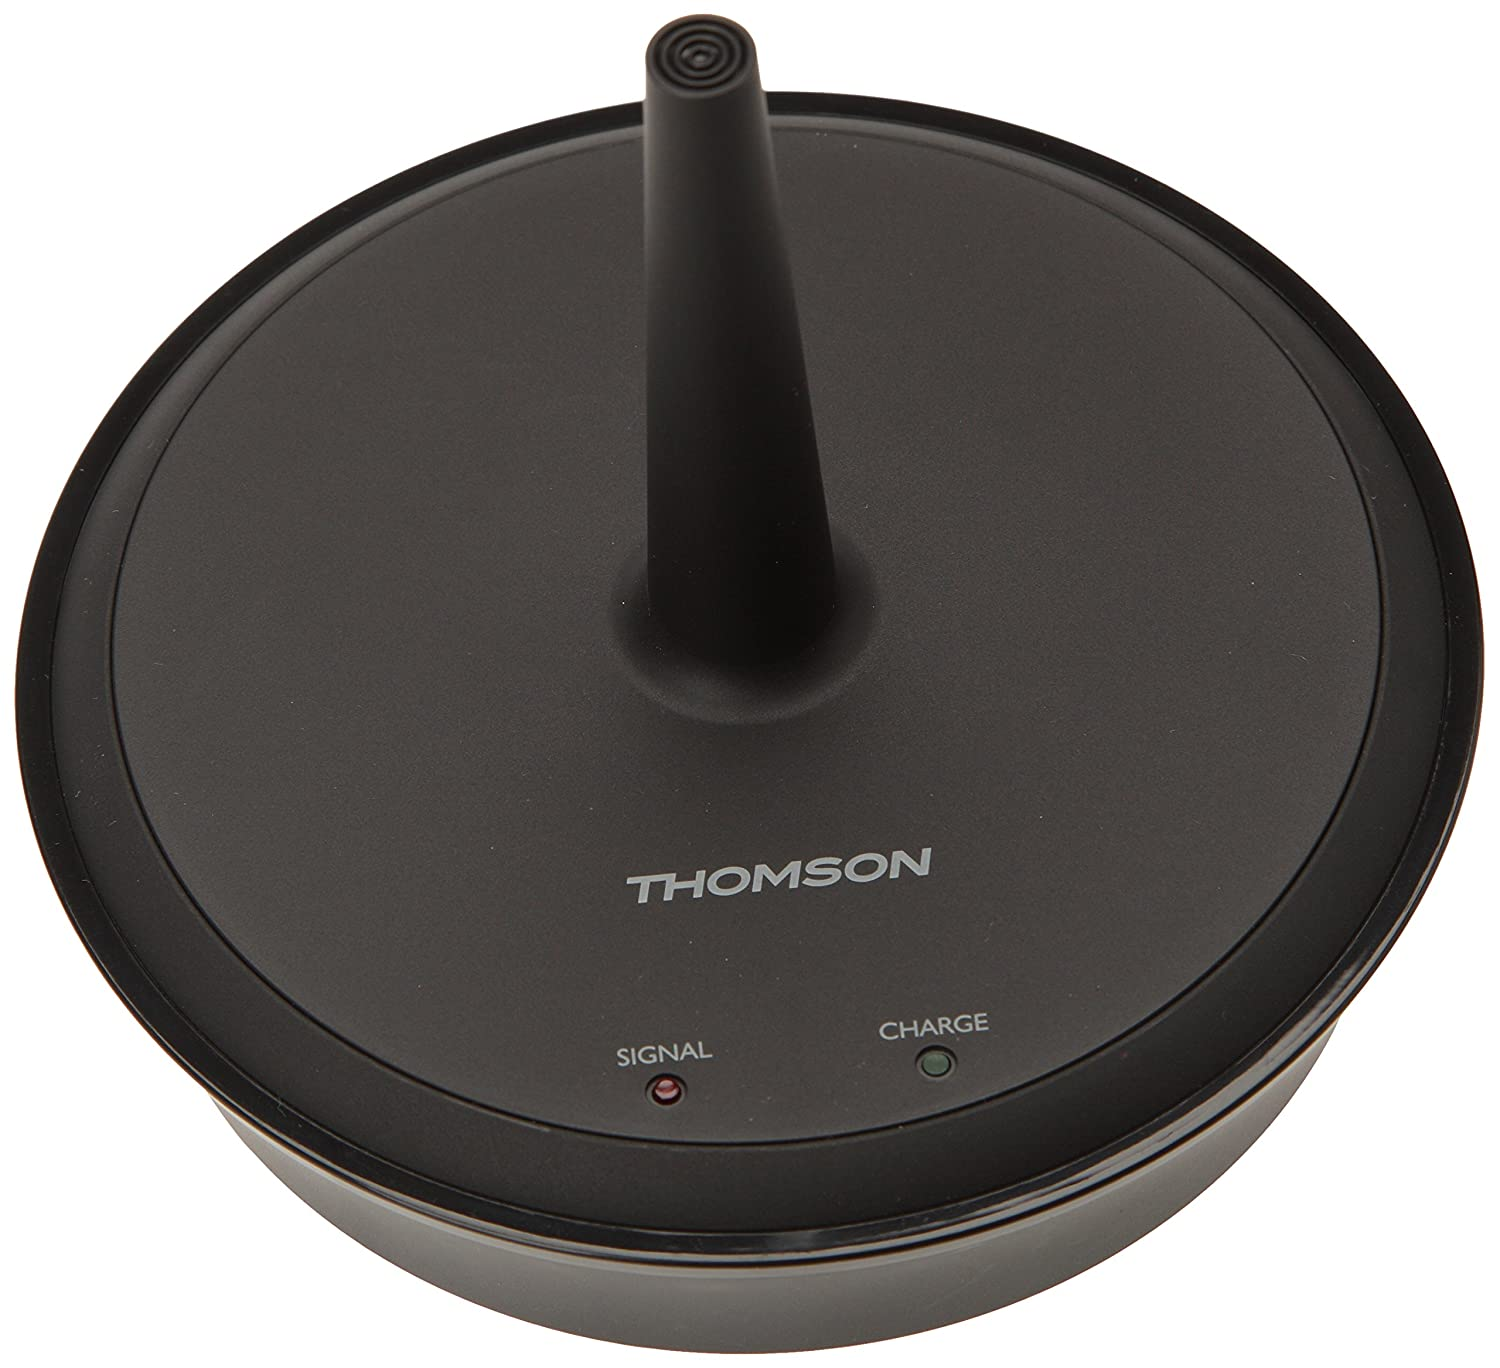 Thomson WHP 3203 tradicional auriculares UHF analógico: Amazon.es: Electrónica